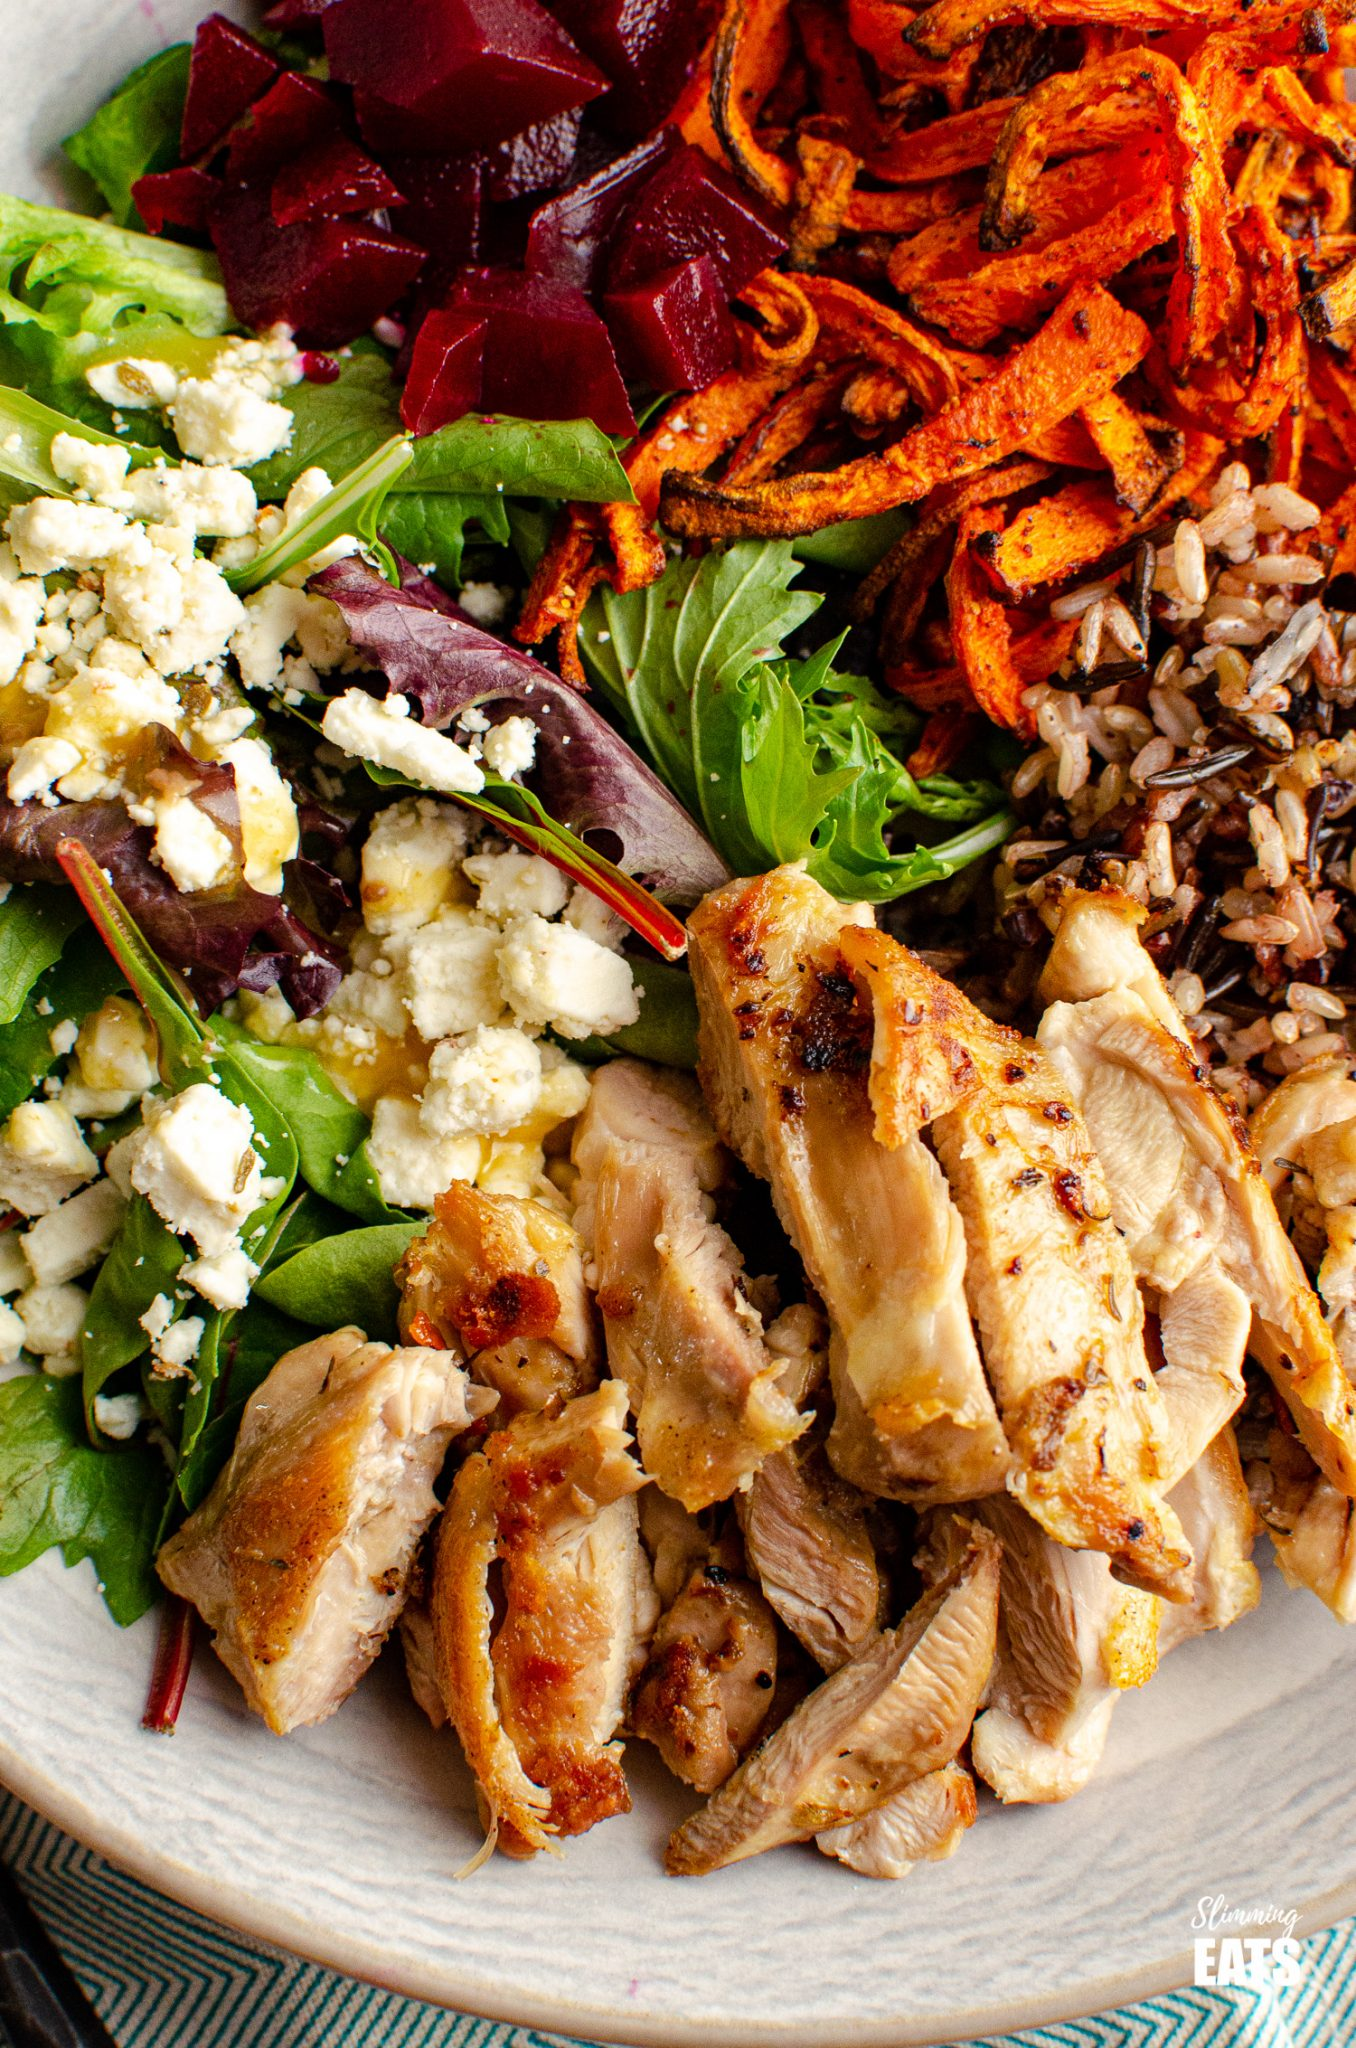 close up of Tender seasoned chicken thighs with a delicious nutty wild rice blend, roasted carrot strands, salad with beets and feta in a bowl with fork